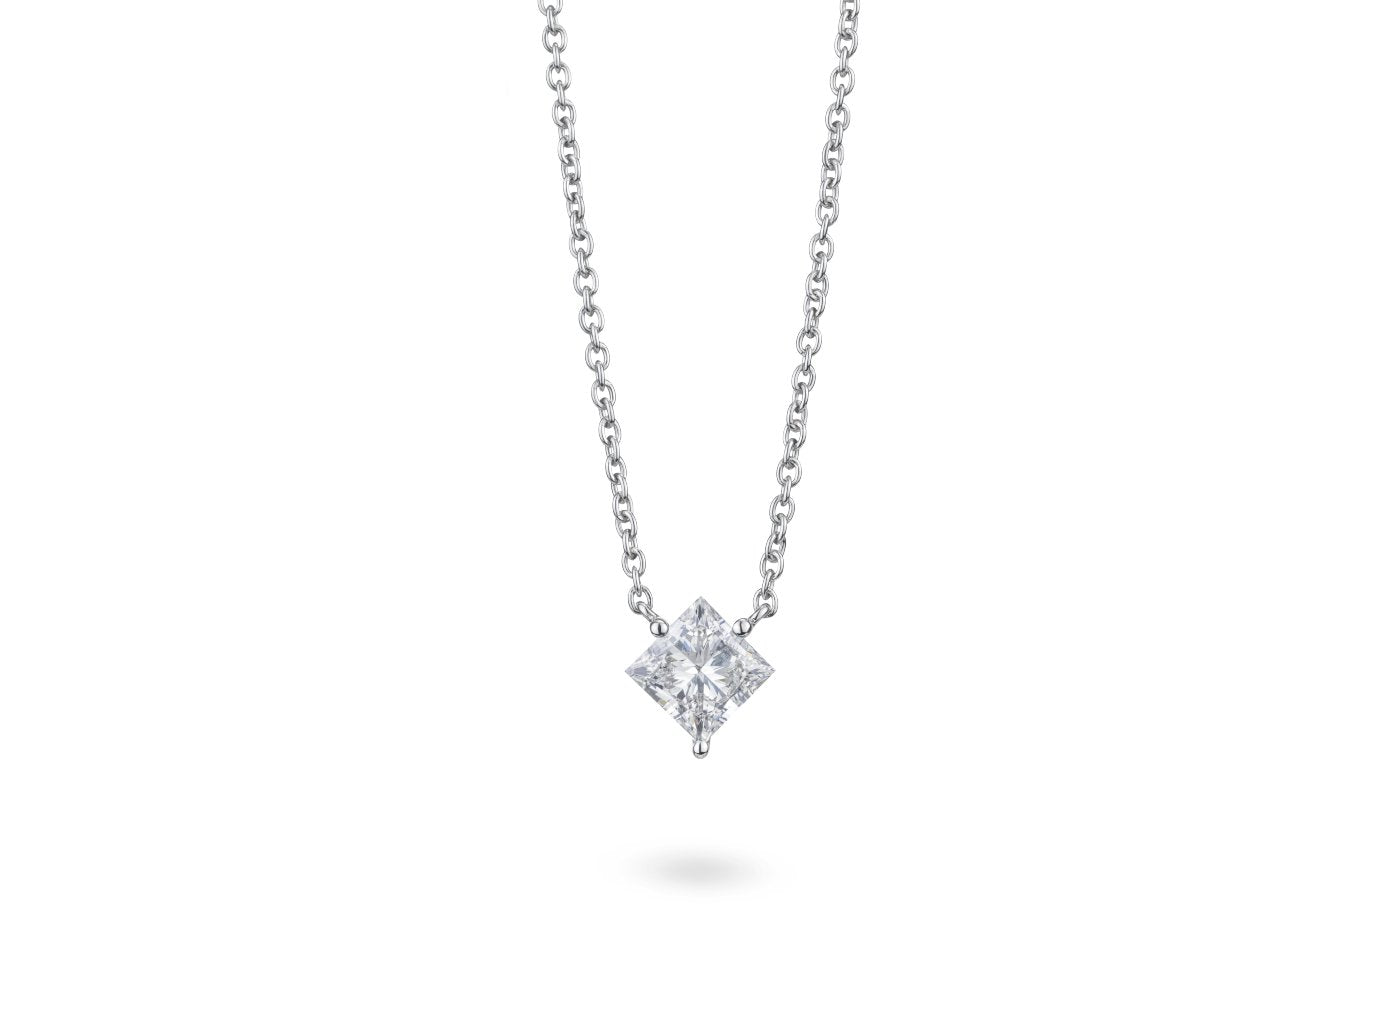 Front view Princess 1-1/8 carat pendant with white diamond